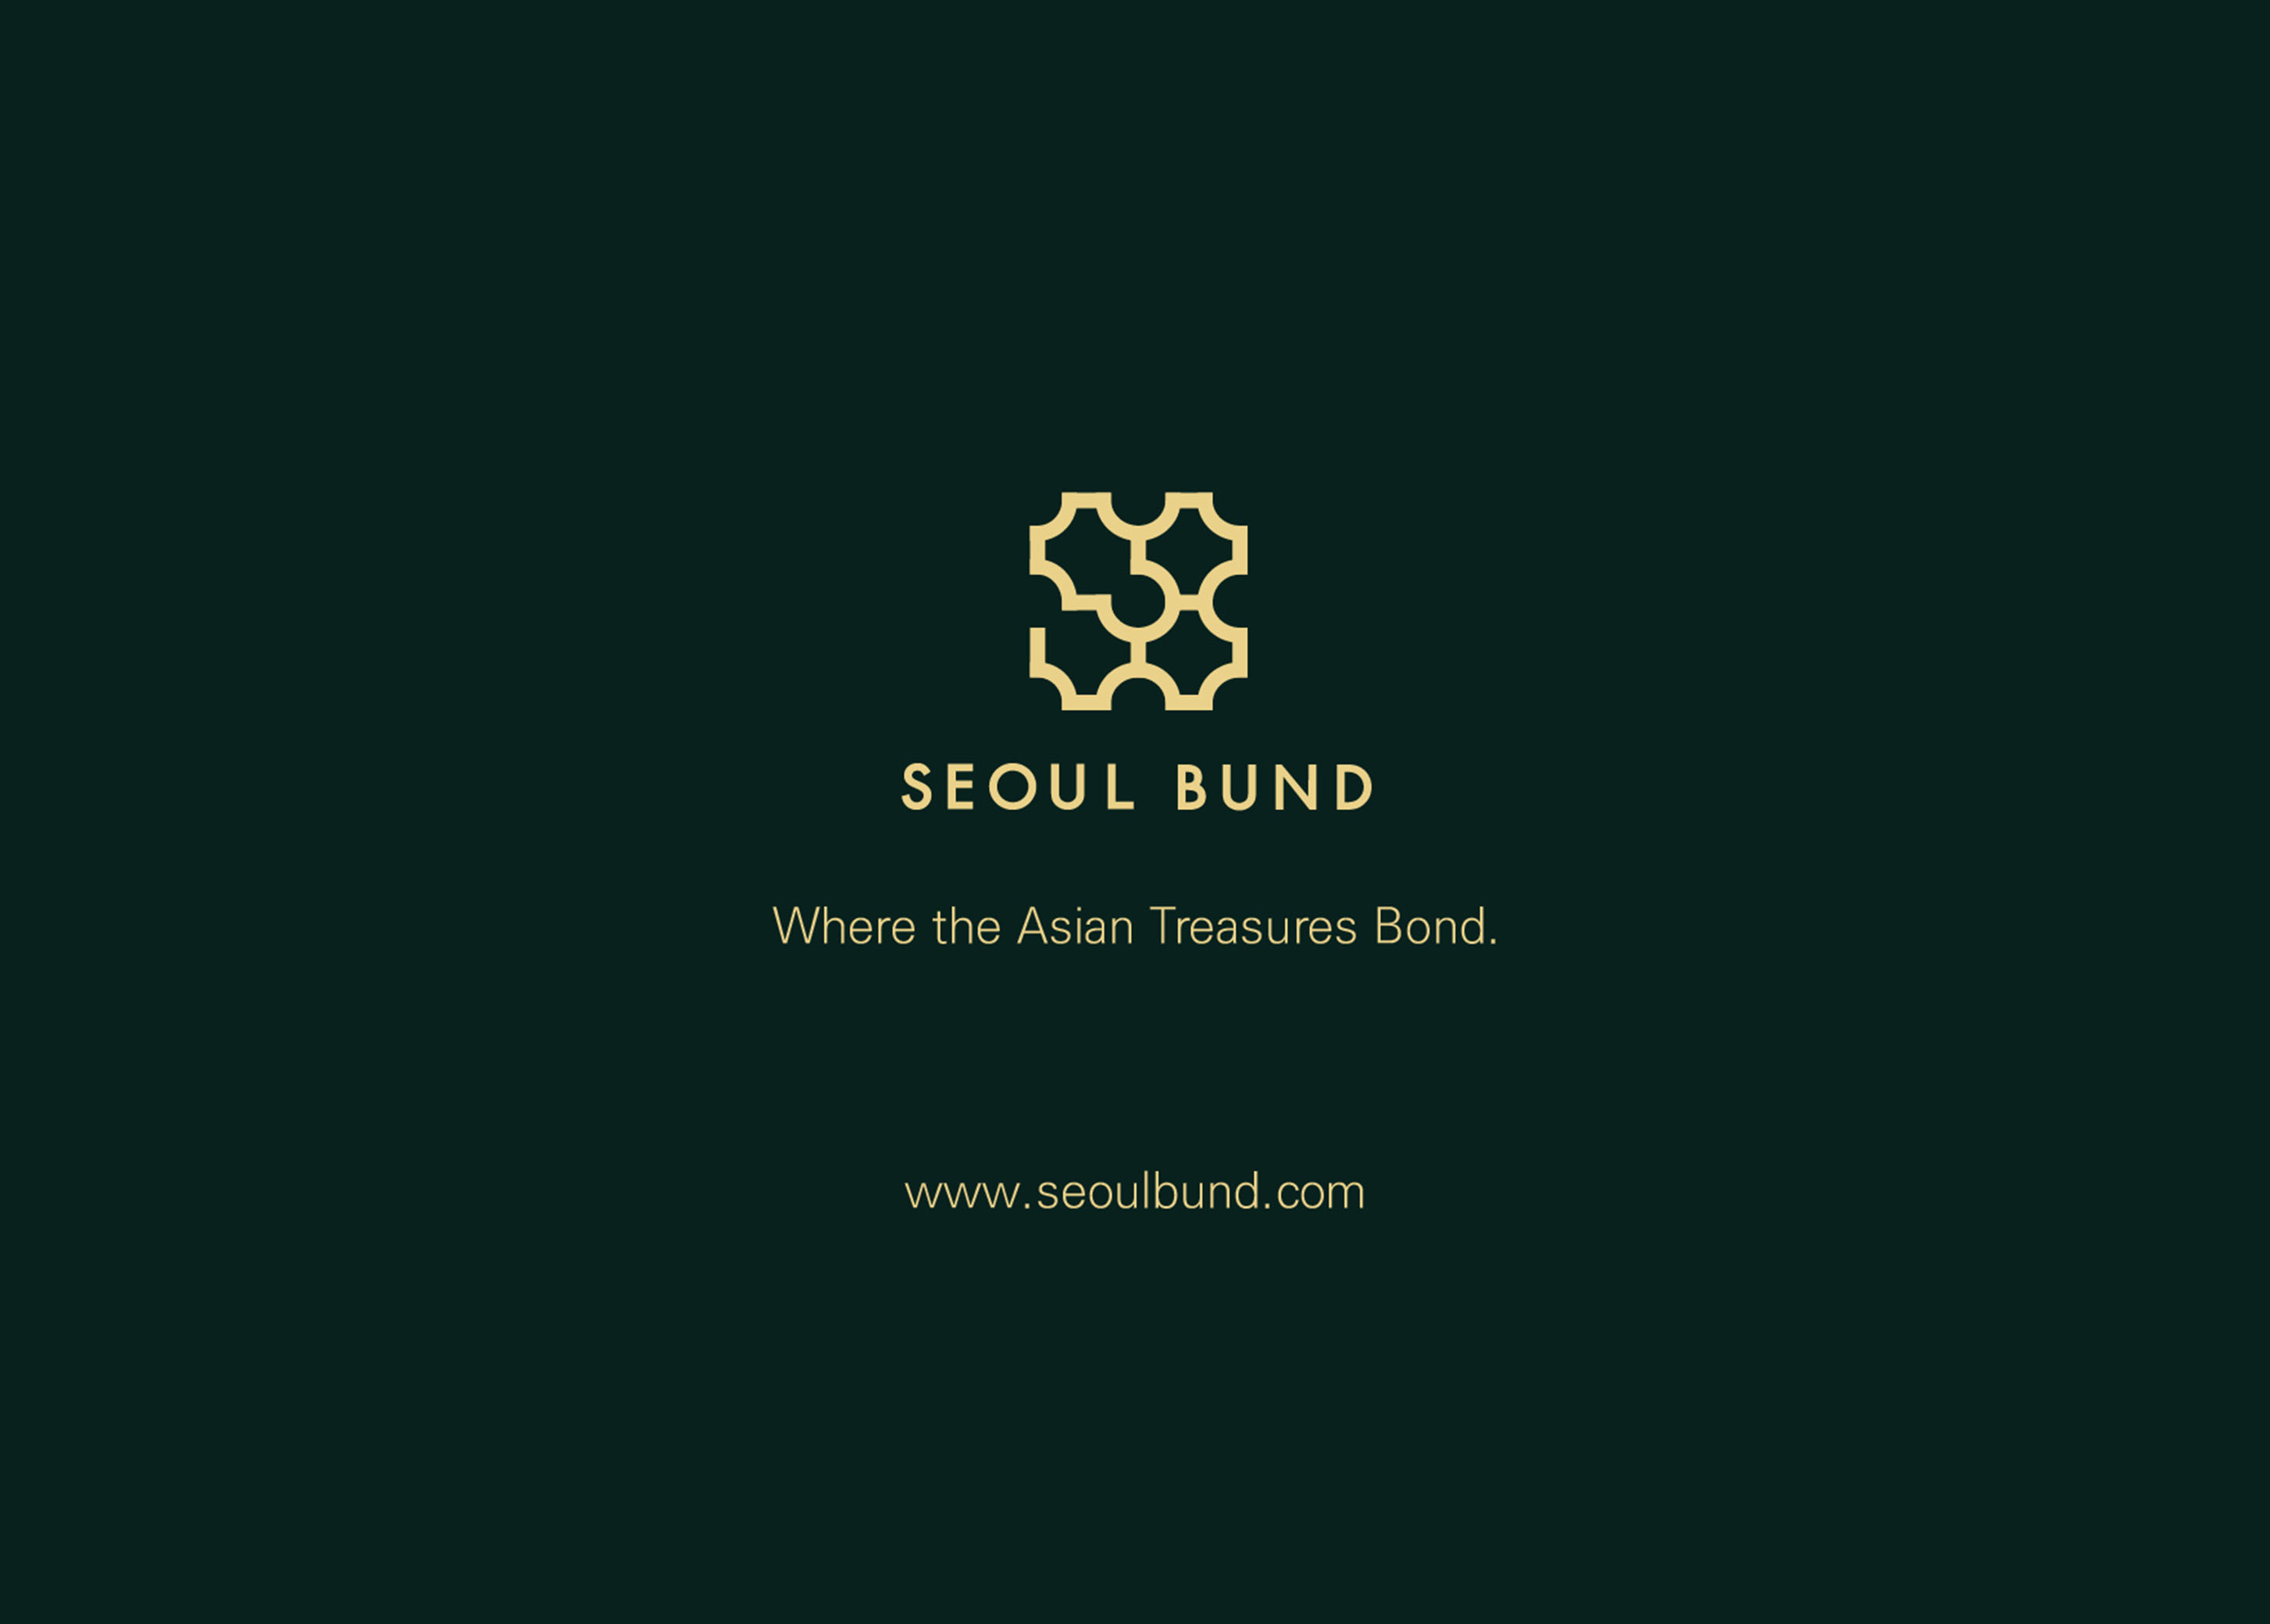 Seoul bund Introduction